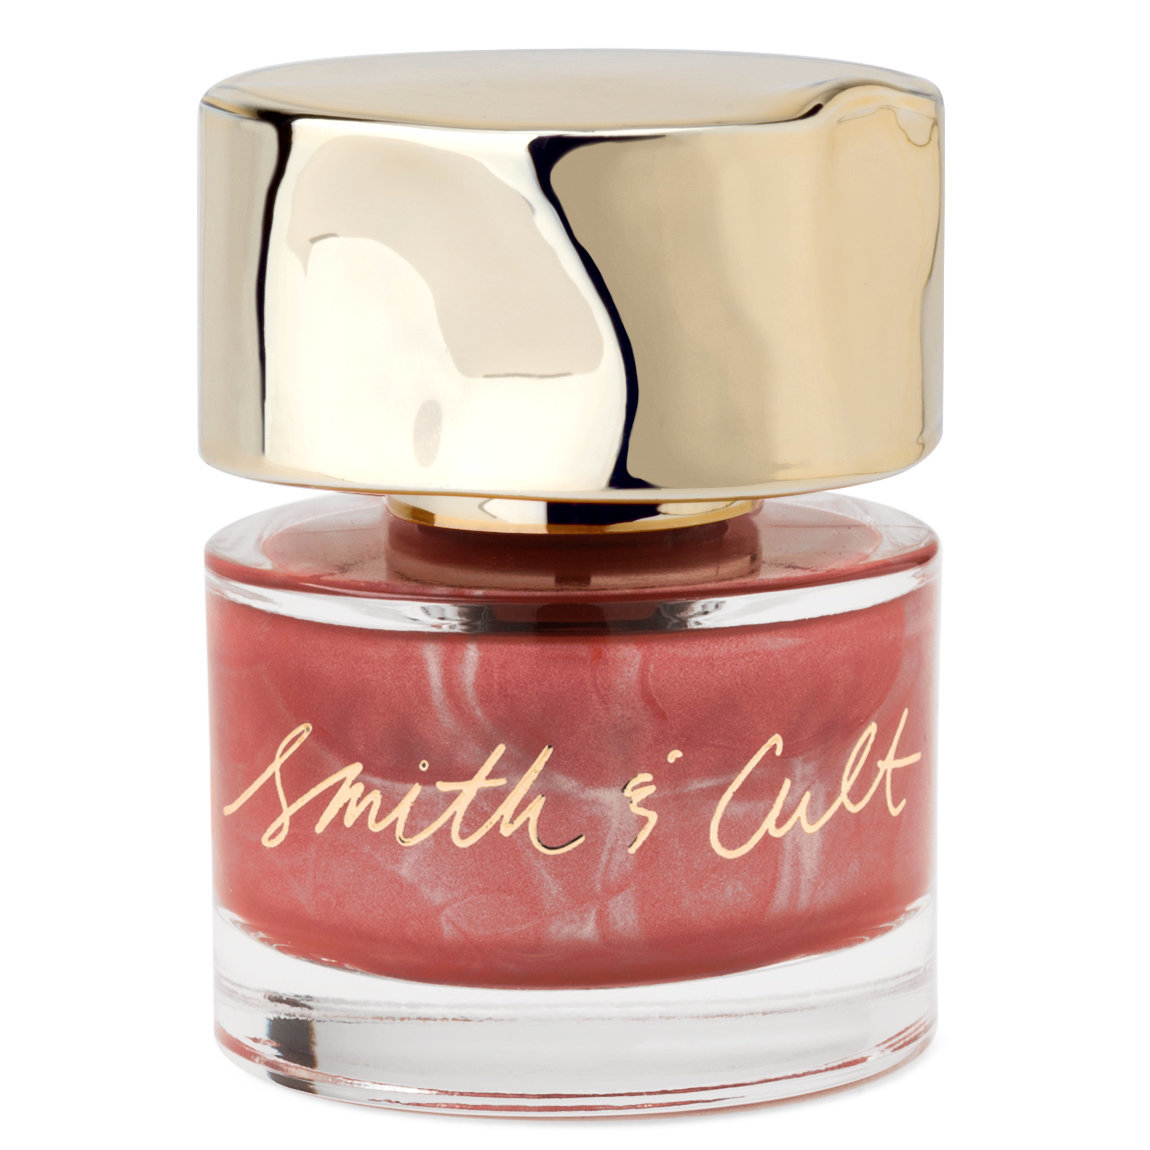 Smith & Cult Nailed Lacquer Fosse Fingers